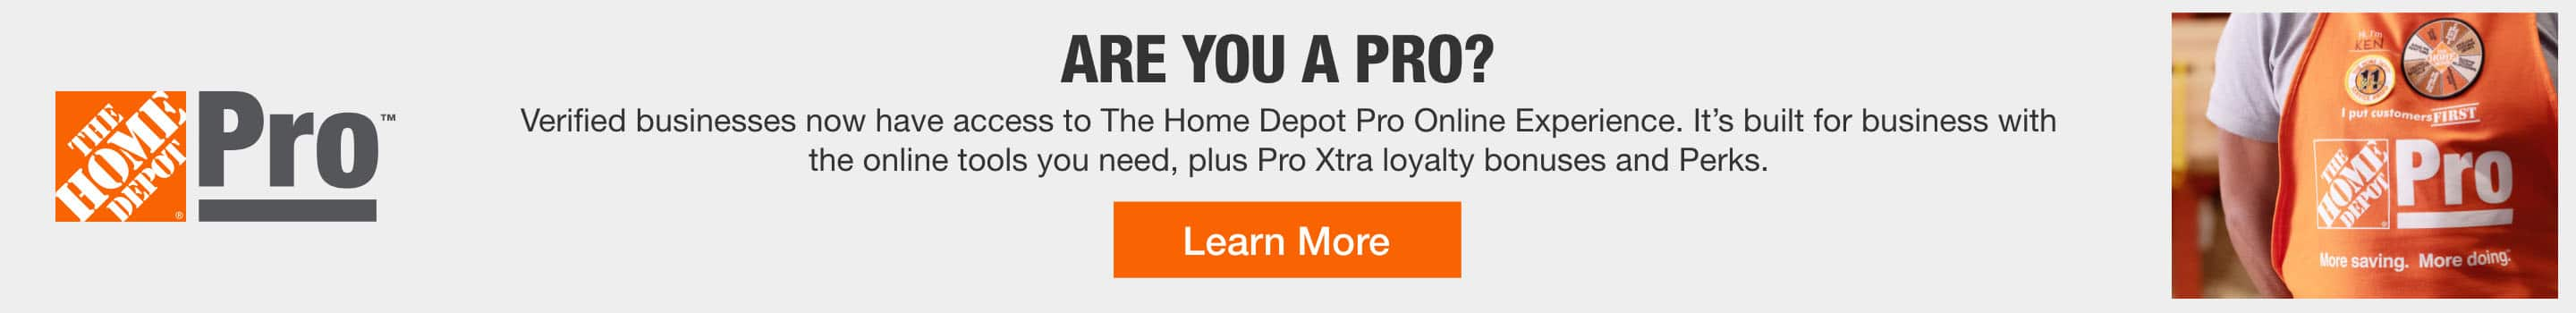 Are You a Pro?   Enjoy pro discounts, personalized product recommendations and express delivery options when you qualify for a Home Depot Pro account.